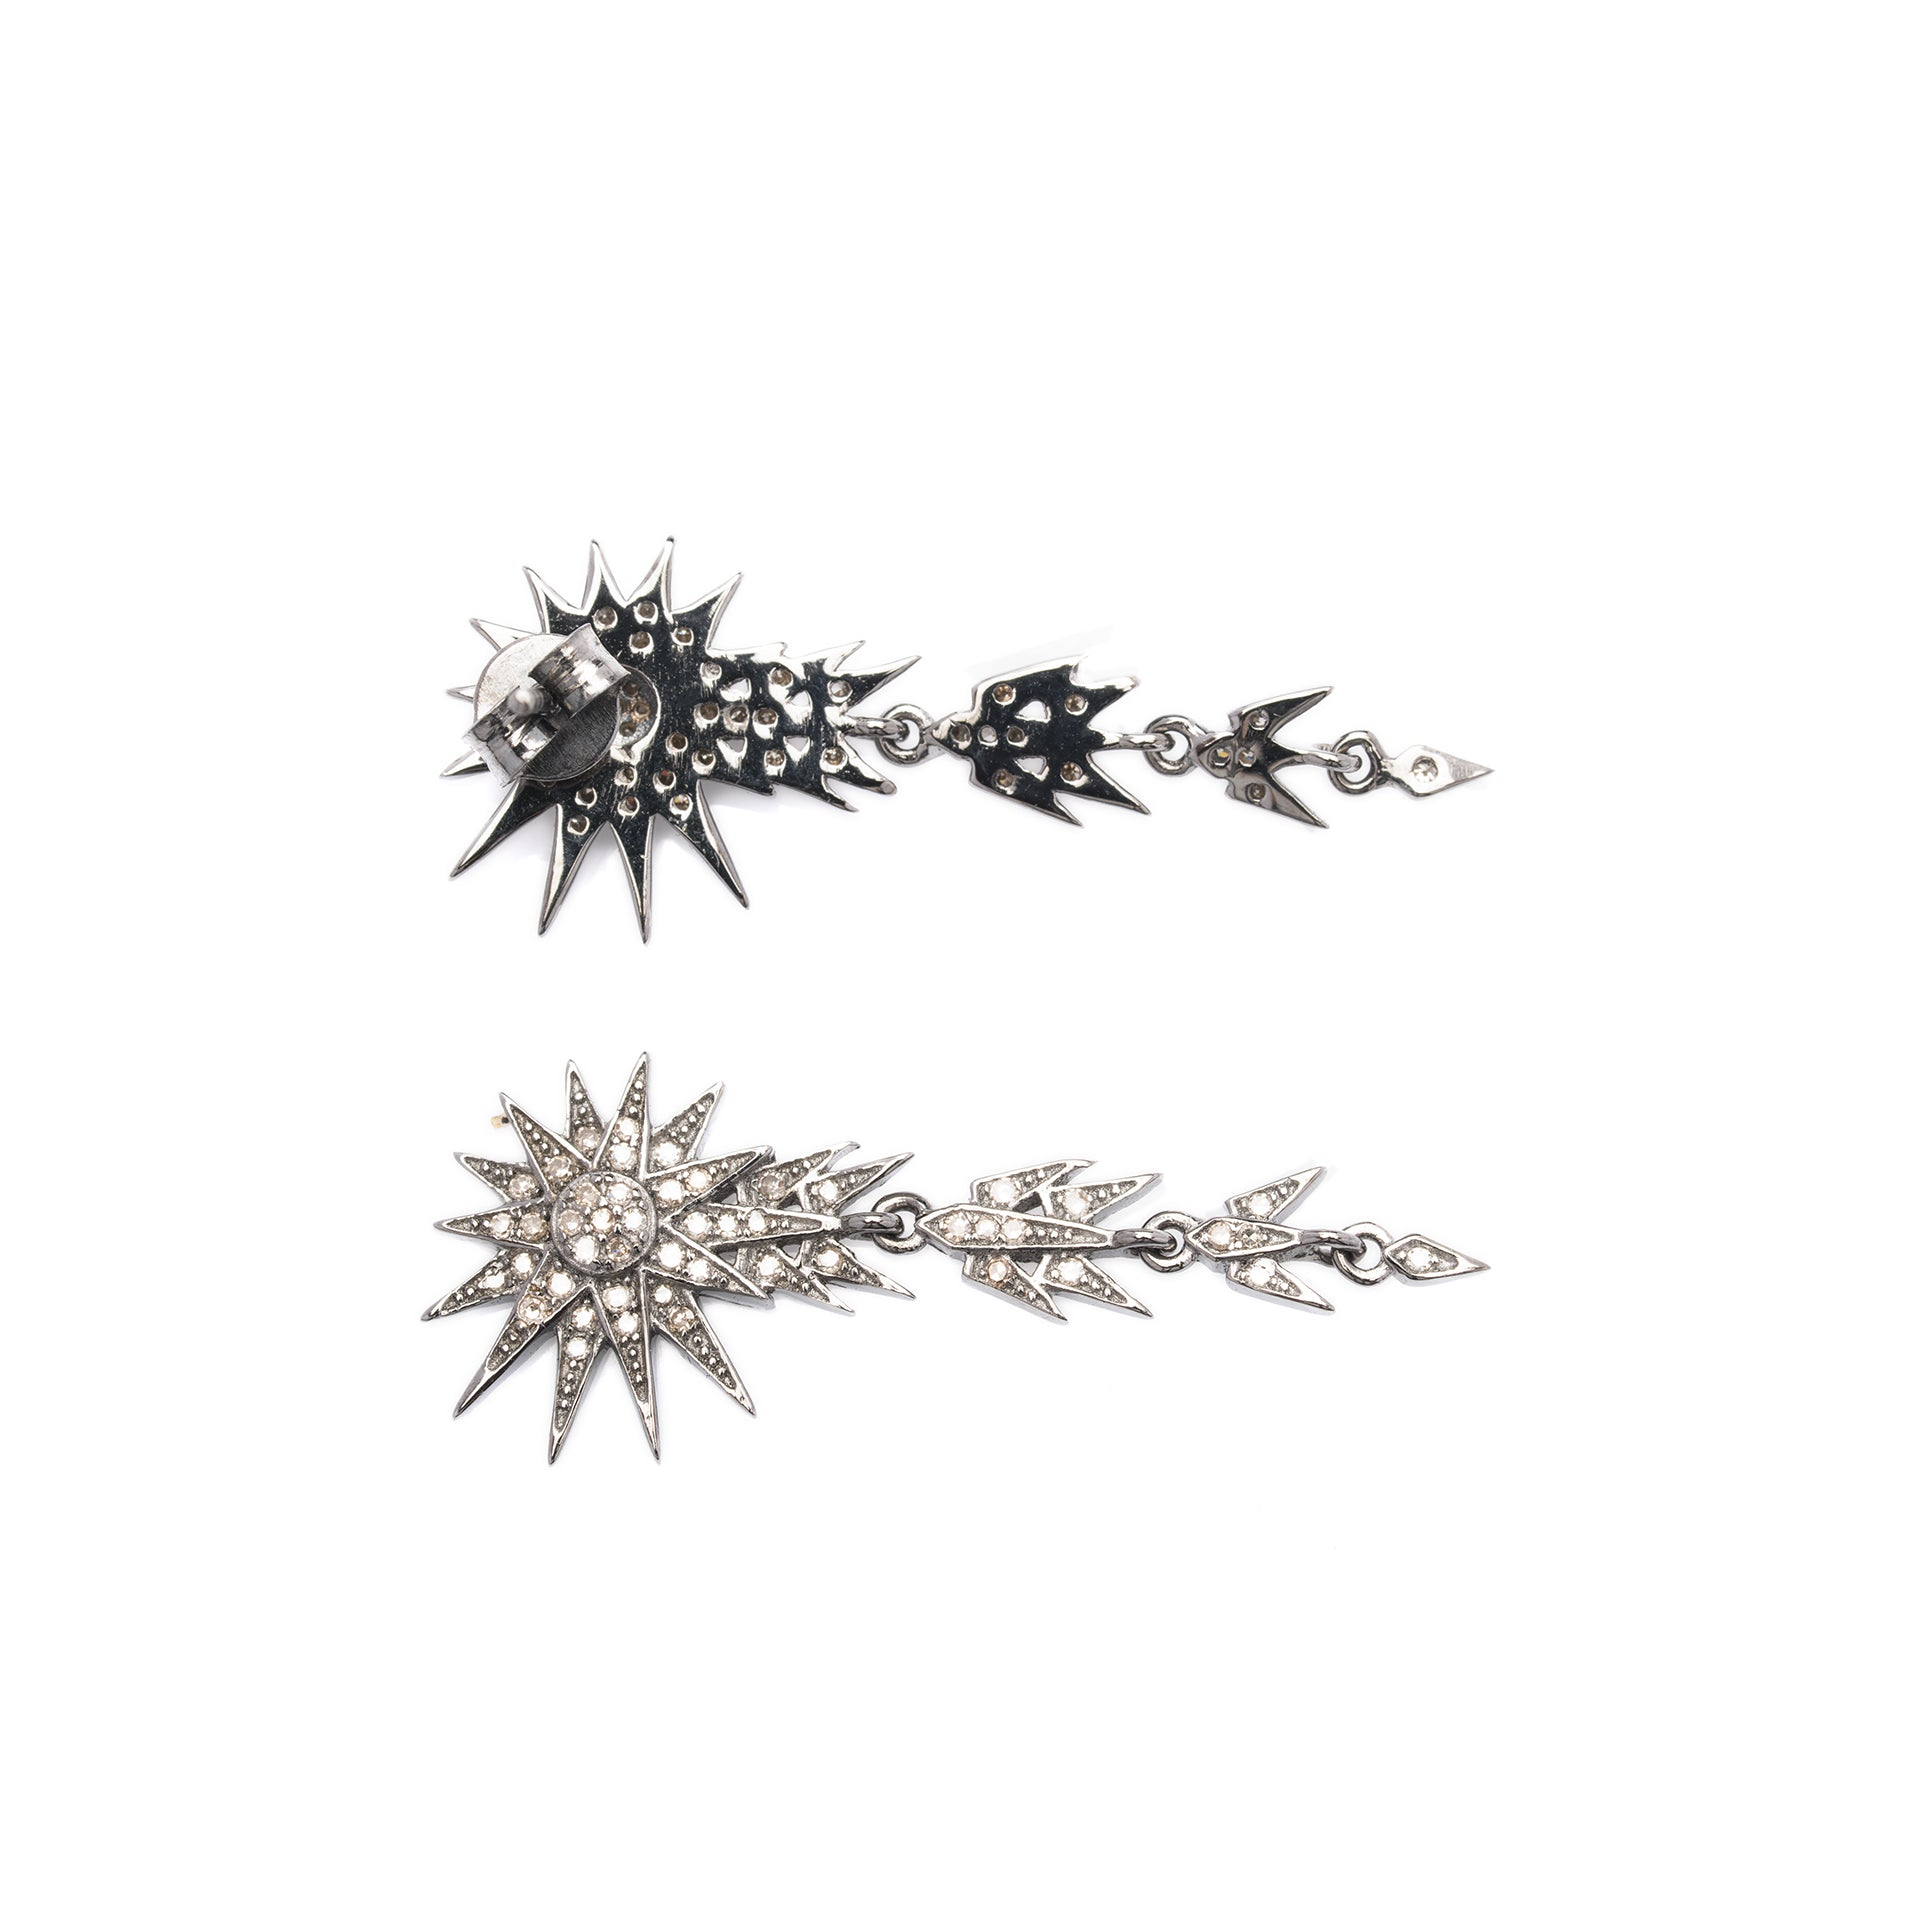 Star Comet Diamond Earrings